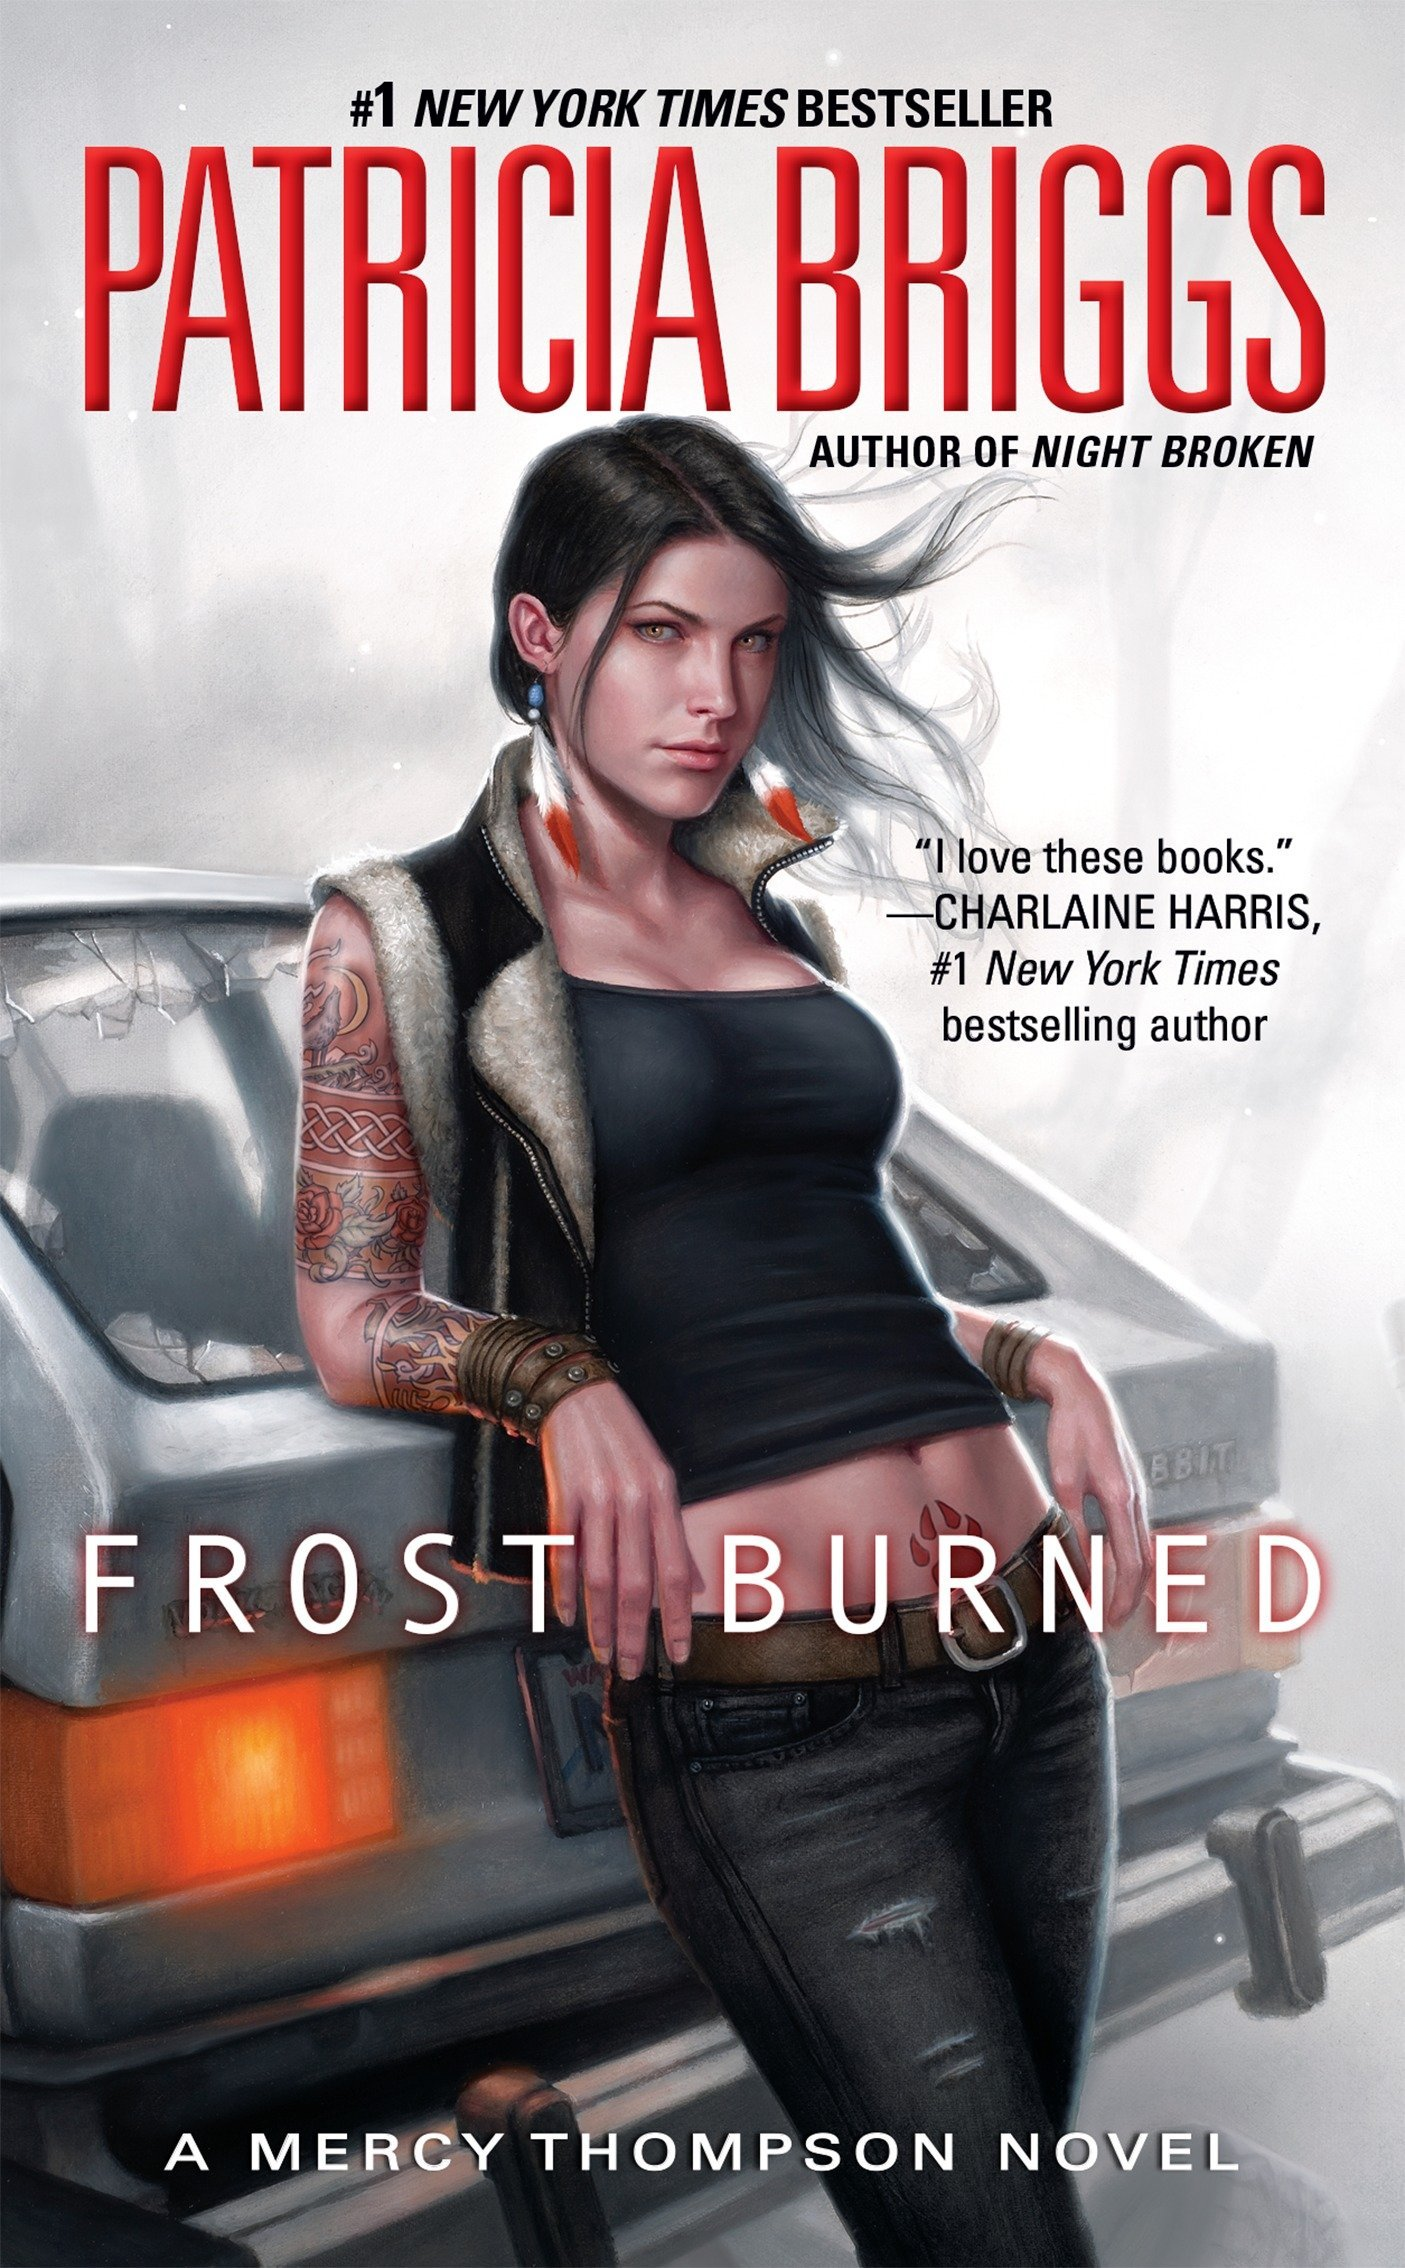 Image result for frost burned patricia briggs book cover